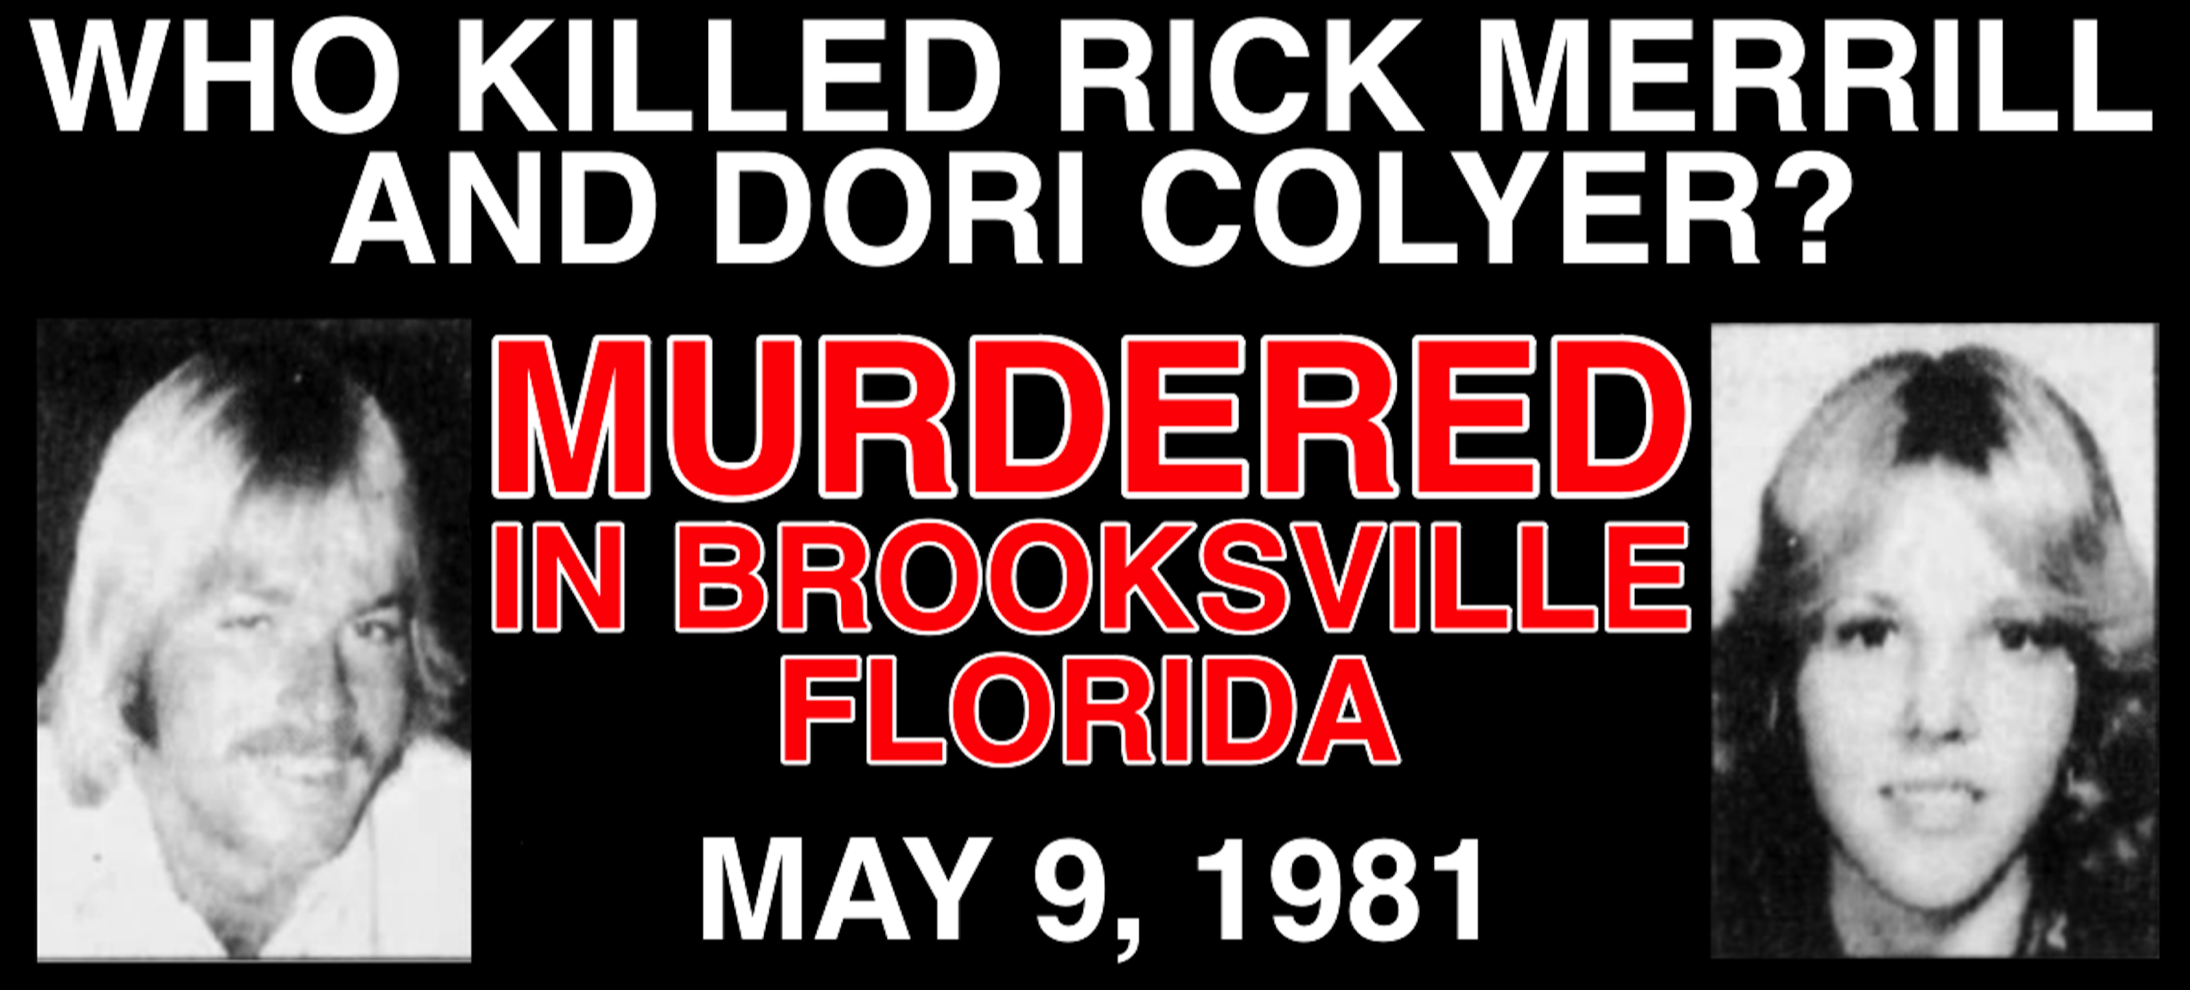 Who Killed Rick Merrill and Dori Colyer?  An unsolved 1981 double homicide-by-arson in Brooksville Florida.